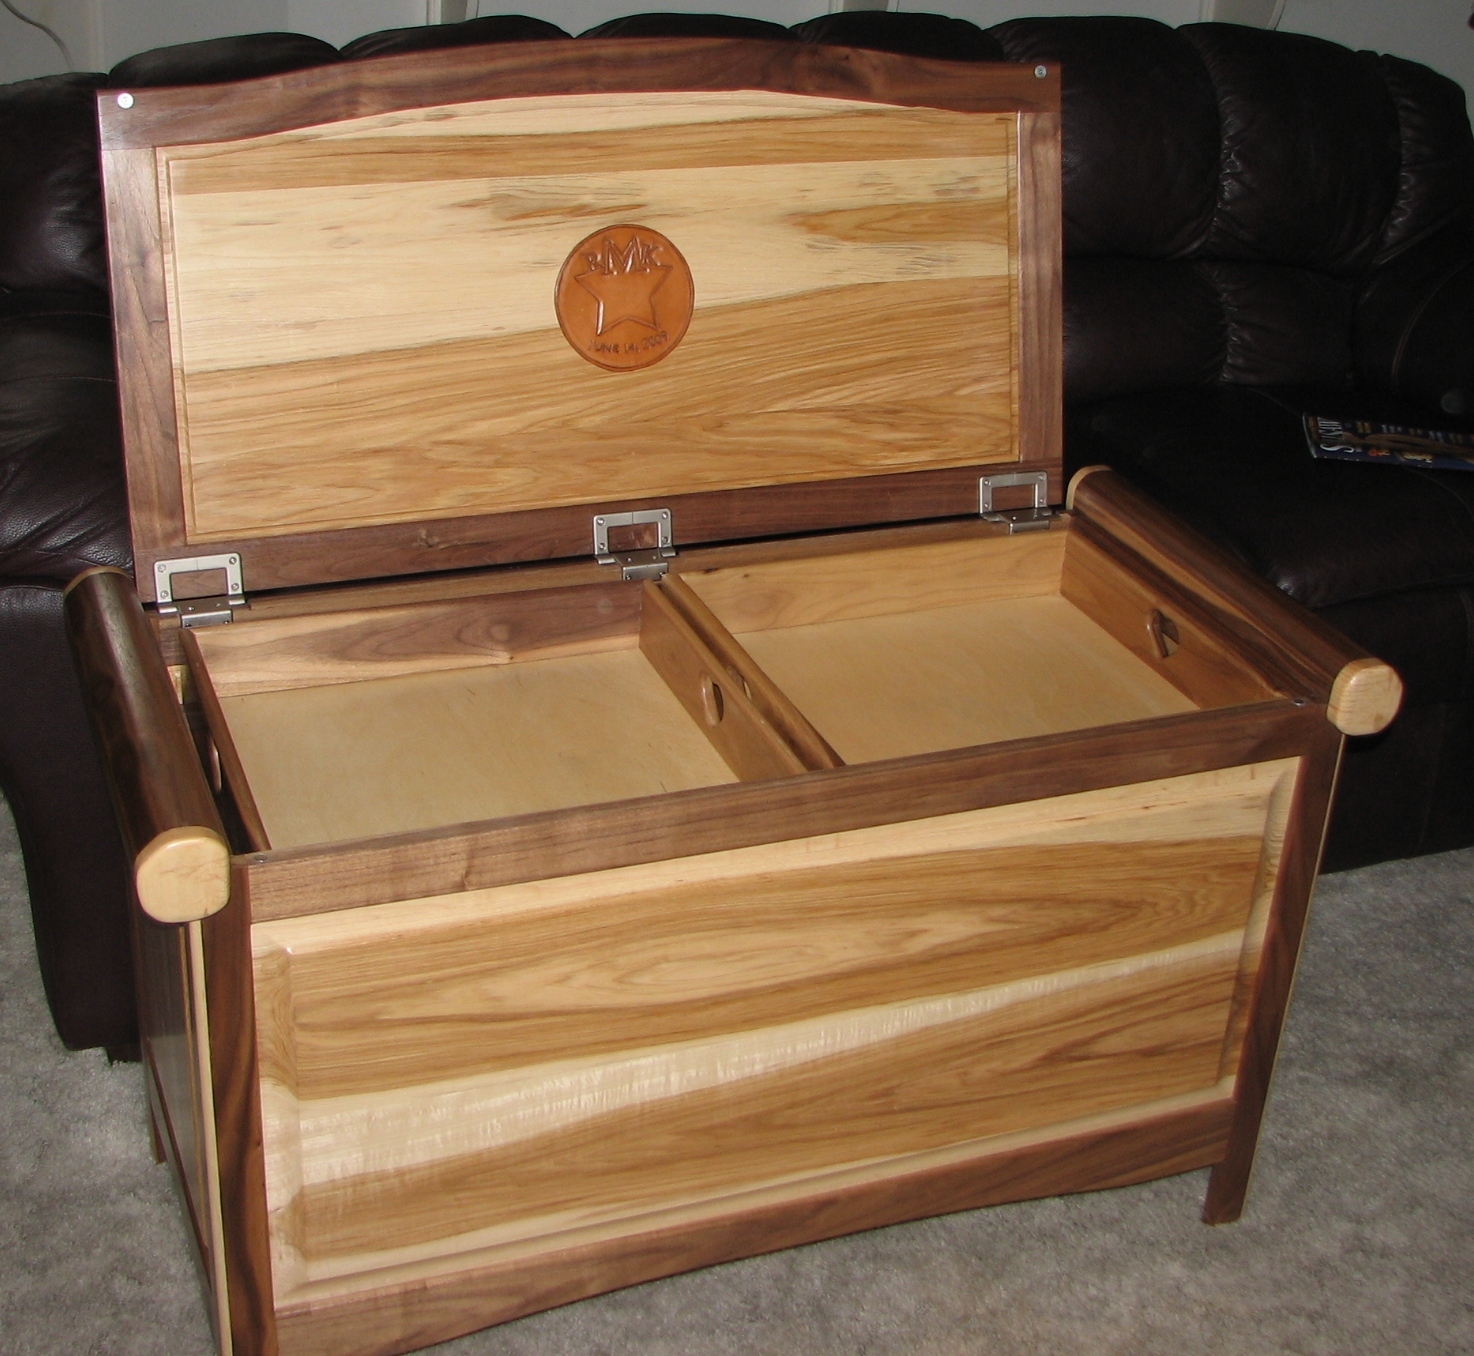 Woodworking plans cedar hope chest PDF Free Download